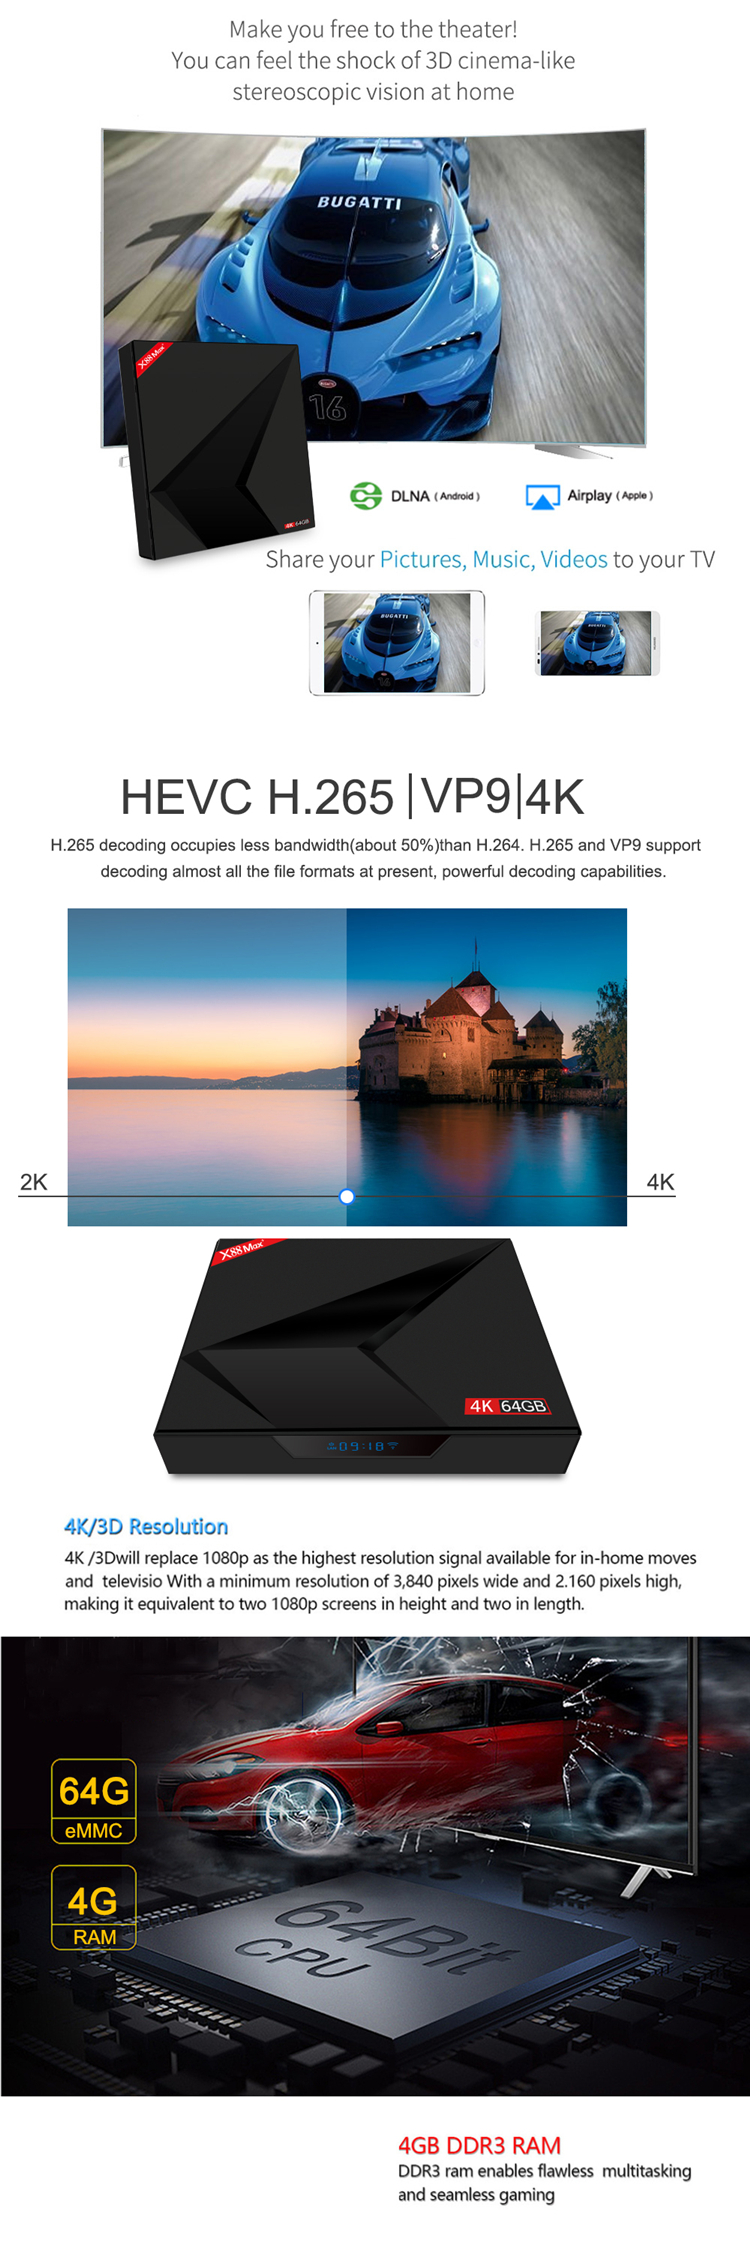 android tv ott full hd 1080p X88 MAX+ RK3328 4G 64G video full hd video android tv box 9.0 ott android dual wifi